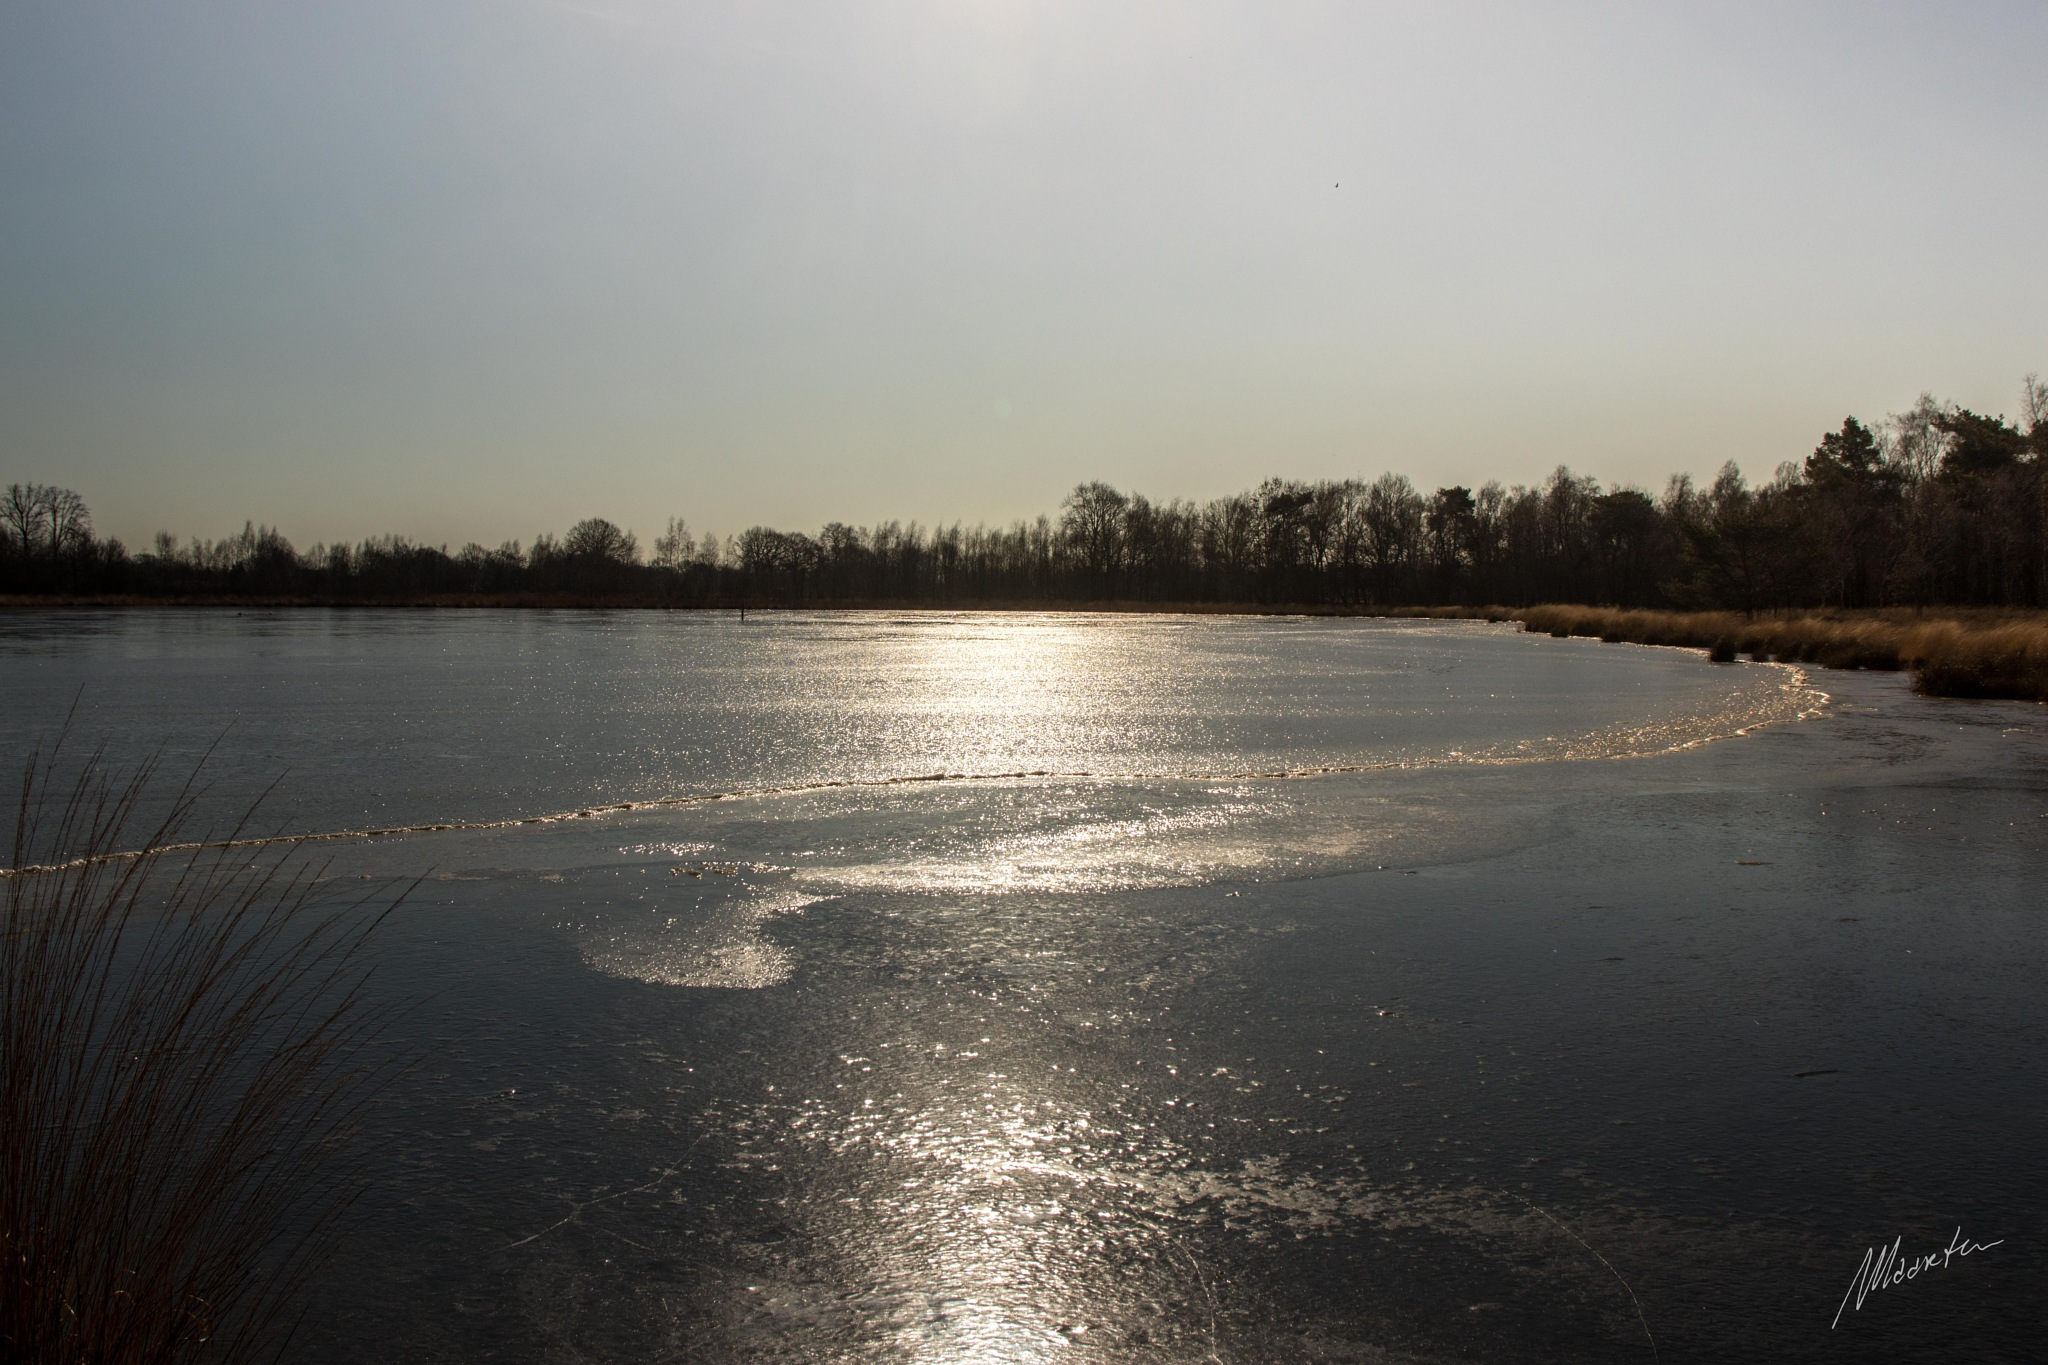 Almost ready for ice skating by Maarten Hendriks